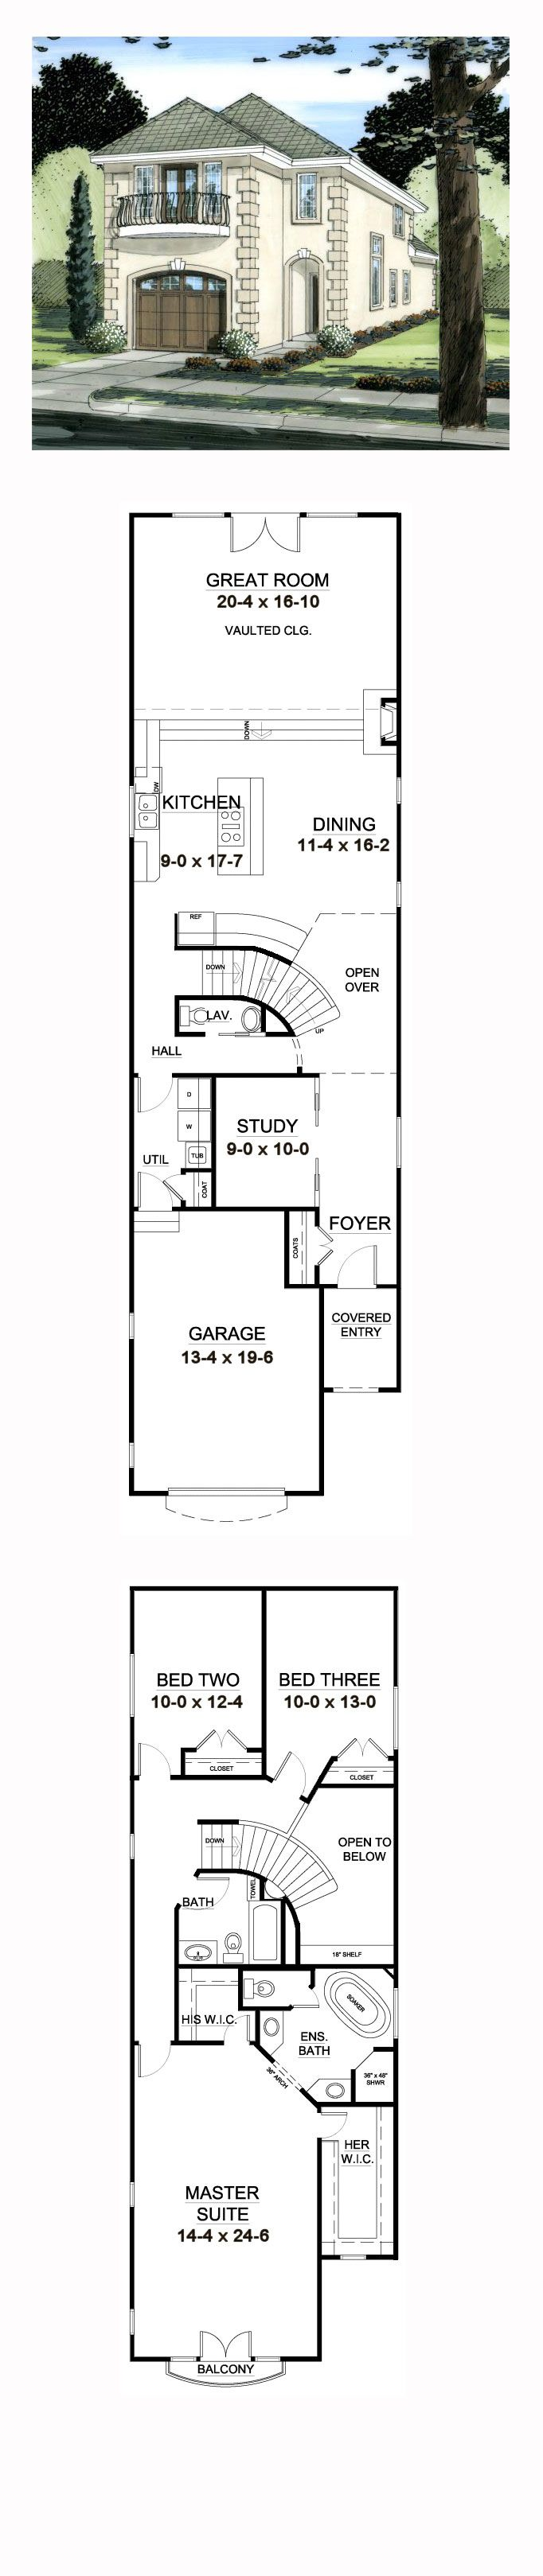 d36b78bca39d2370f88ef3be5821934f  house plans narrow lot  story narrow house floor plan Top Result 52 Elegant House Plans with Finished Basement